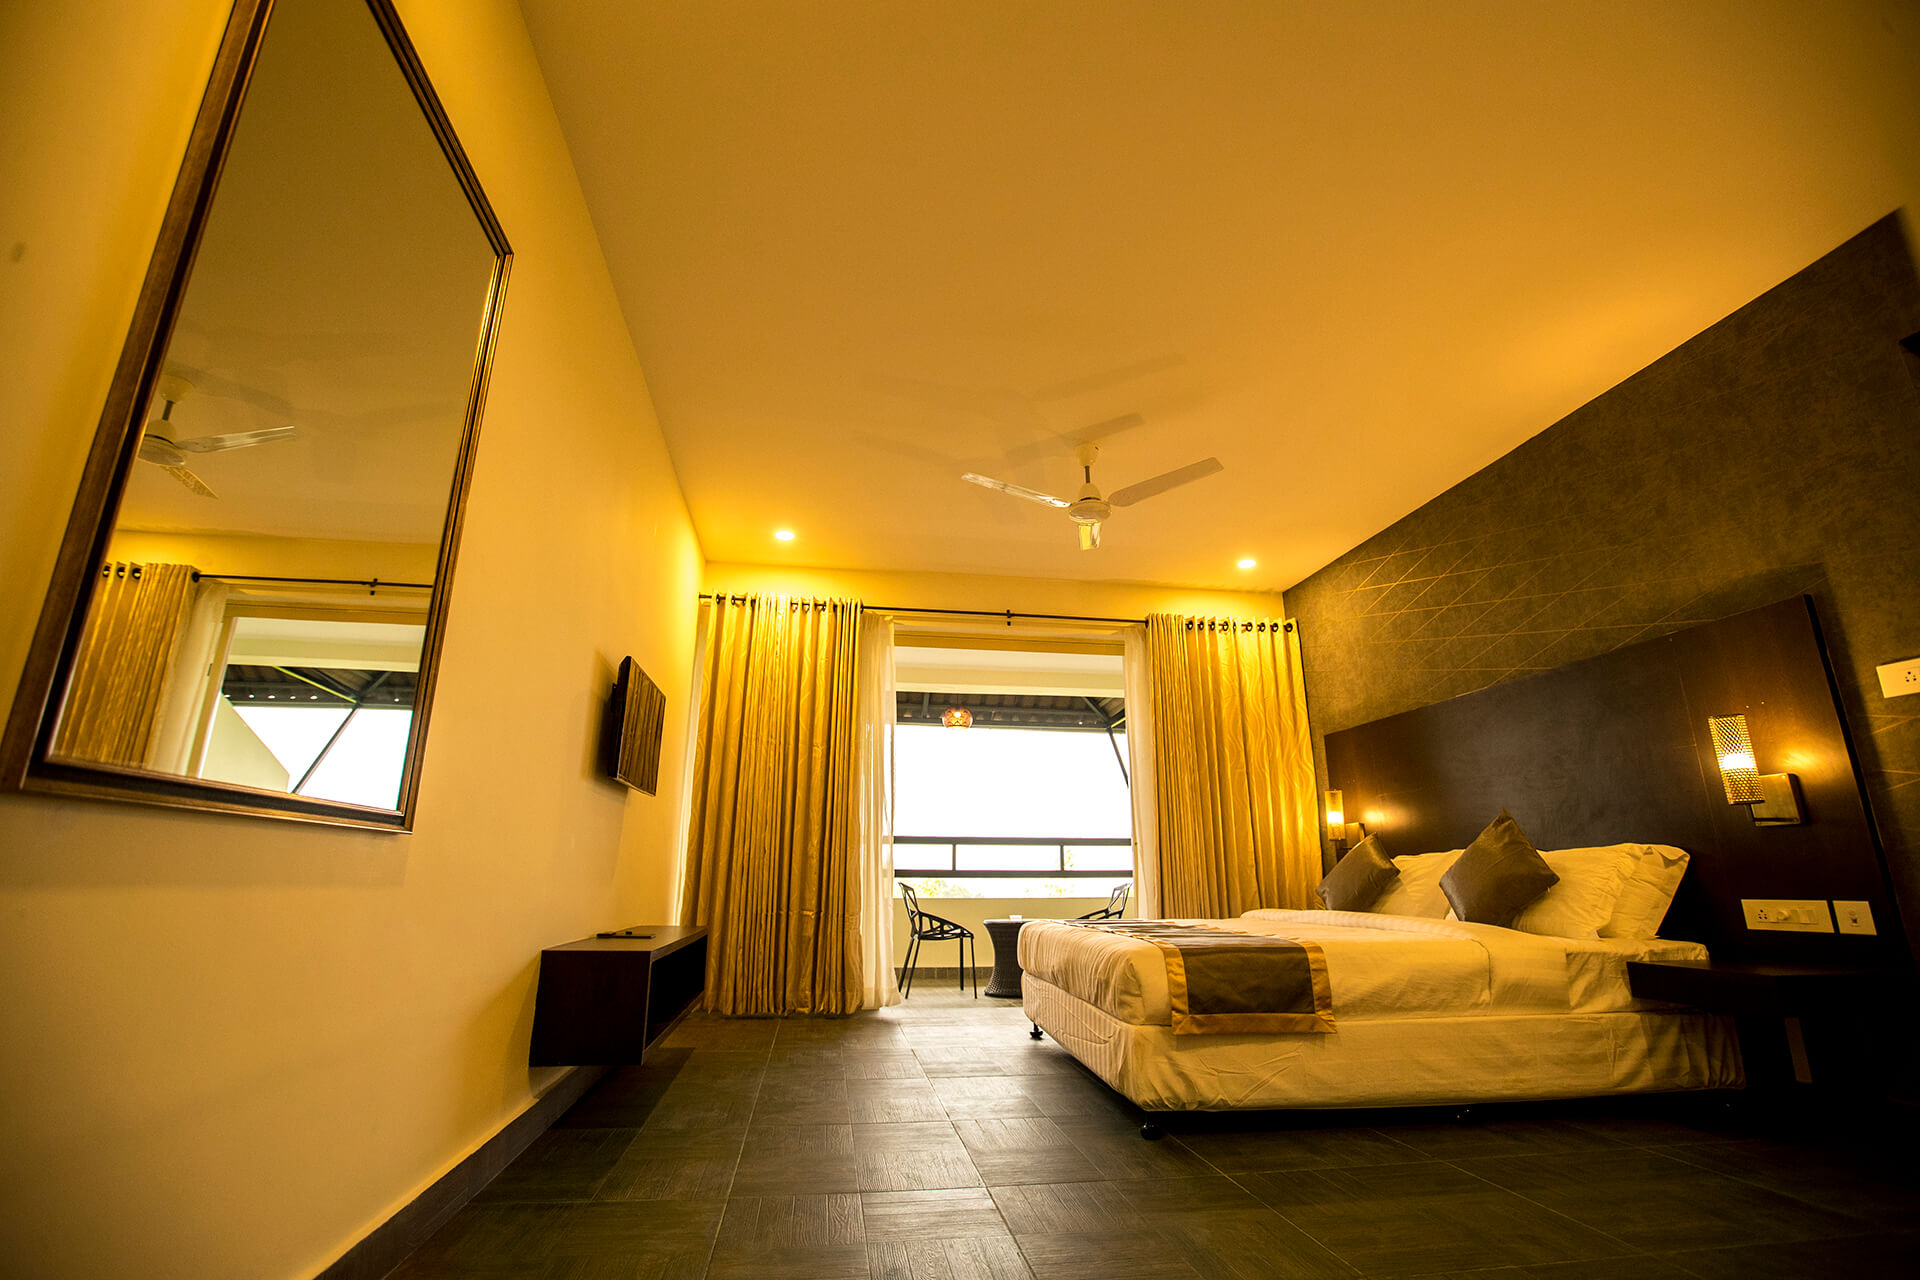 World Class Stay with 24x7 Service